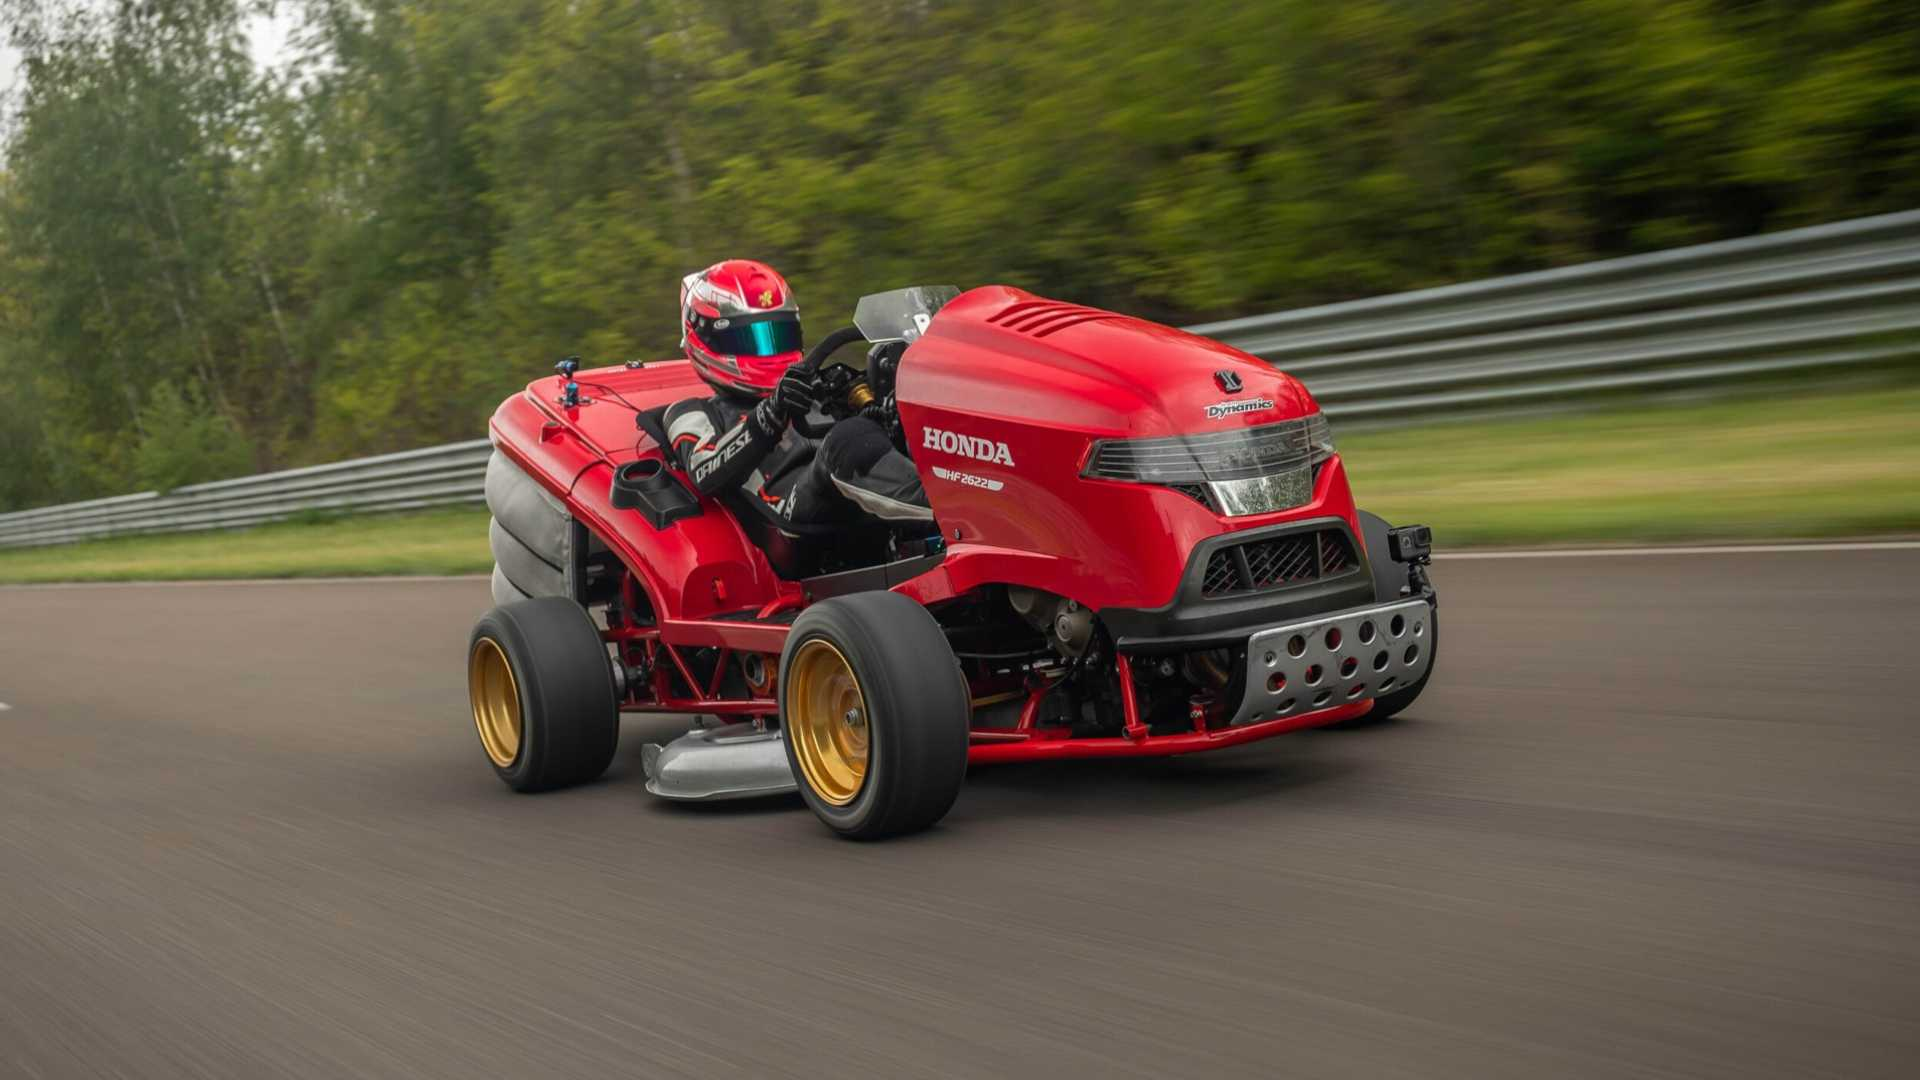 [Image: honda-mean-mower-racing-closeup.jpg]